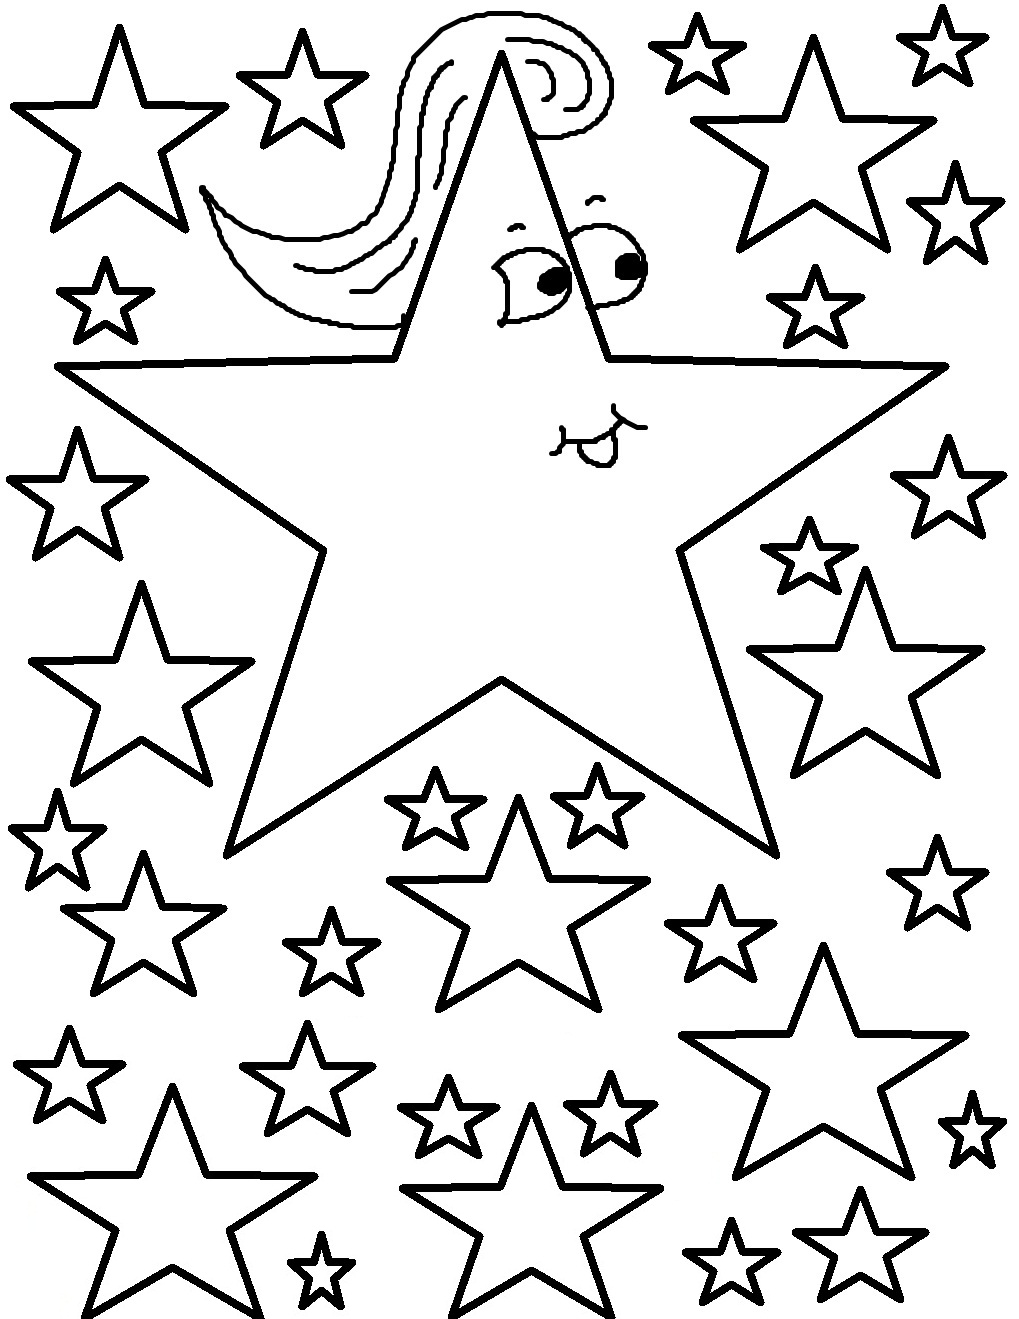 Falling Star Drawing at GetDrawings.com   Free for personal use ...